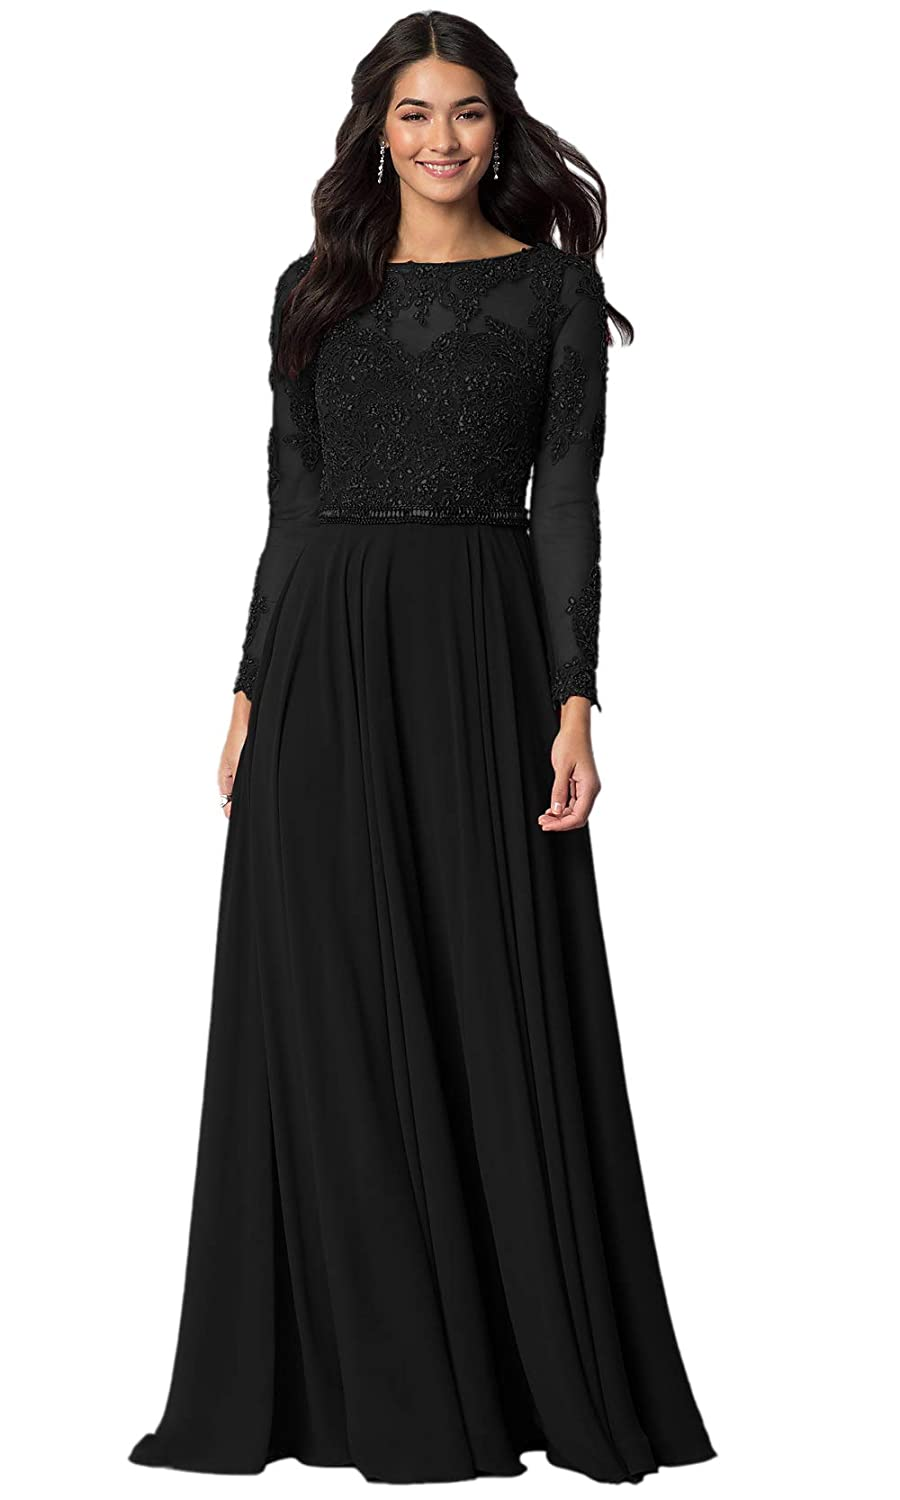 04f80846f6 Aofur Womens Long Sleeve Party Evening Dresses Formal Wedding Prom Cocktail  Gown Ladies Lace Chiffon Maxi Dress: Amazon.co.uk: Clothing